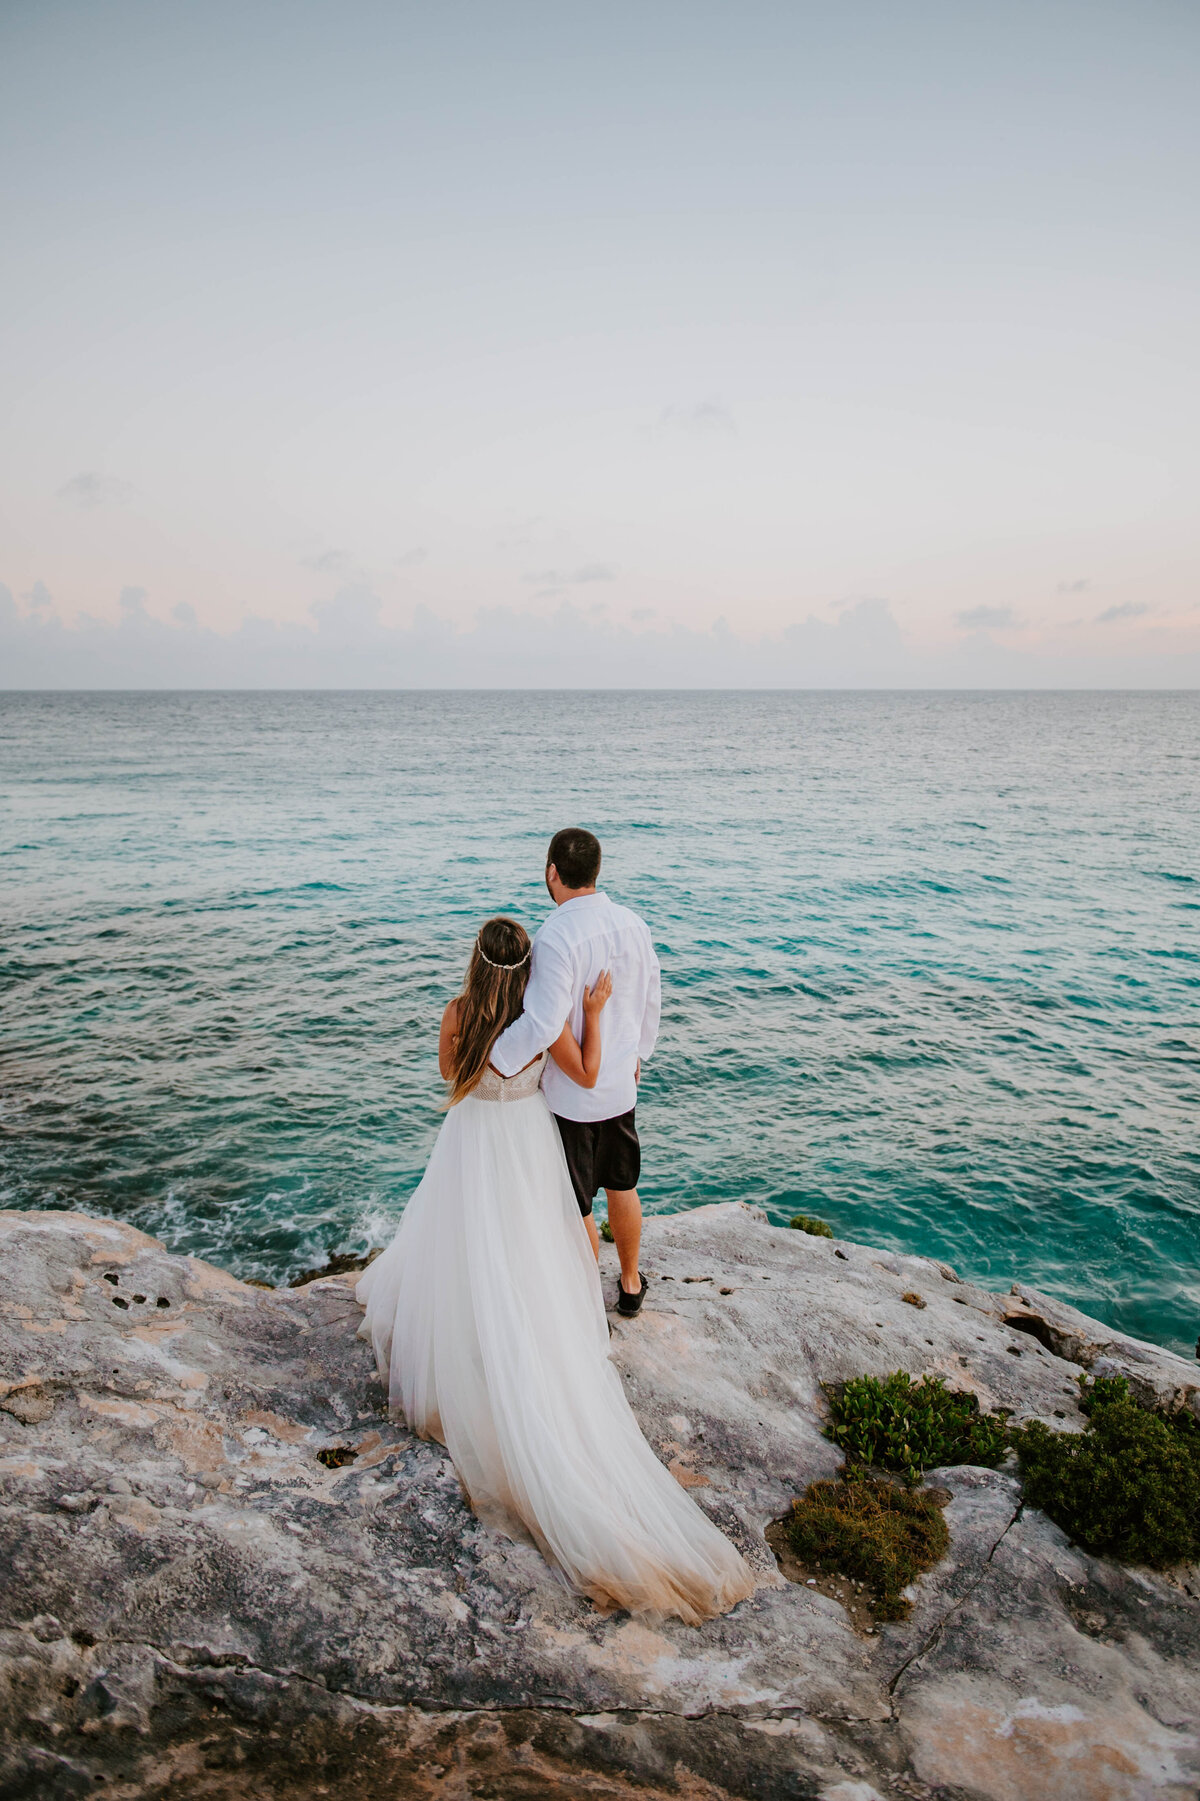 isla-mujeres-wedding-photographer-guthrie-zama-mexico-tulum-cancun-beach-destination-3606